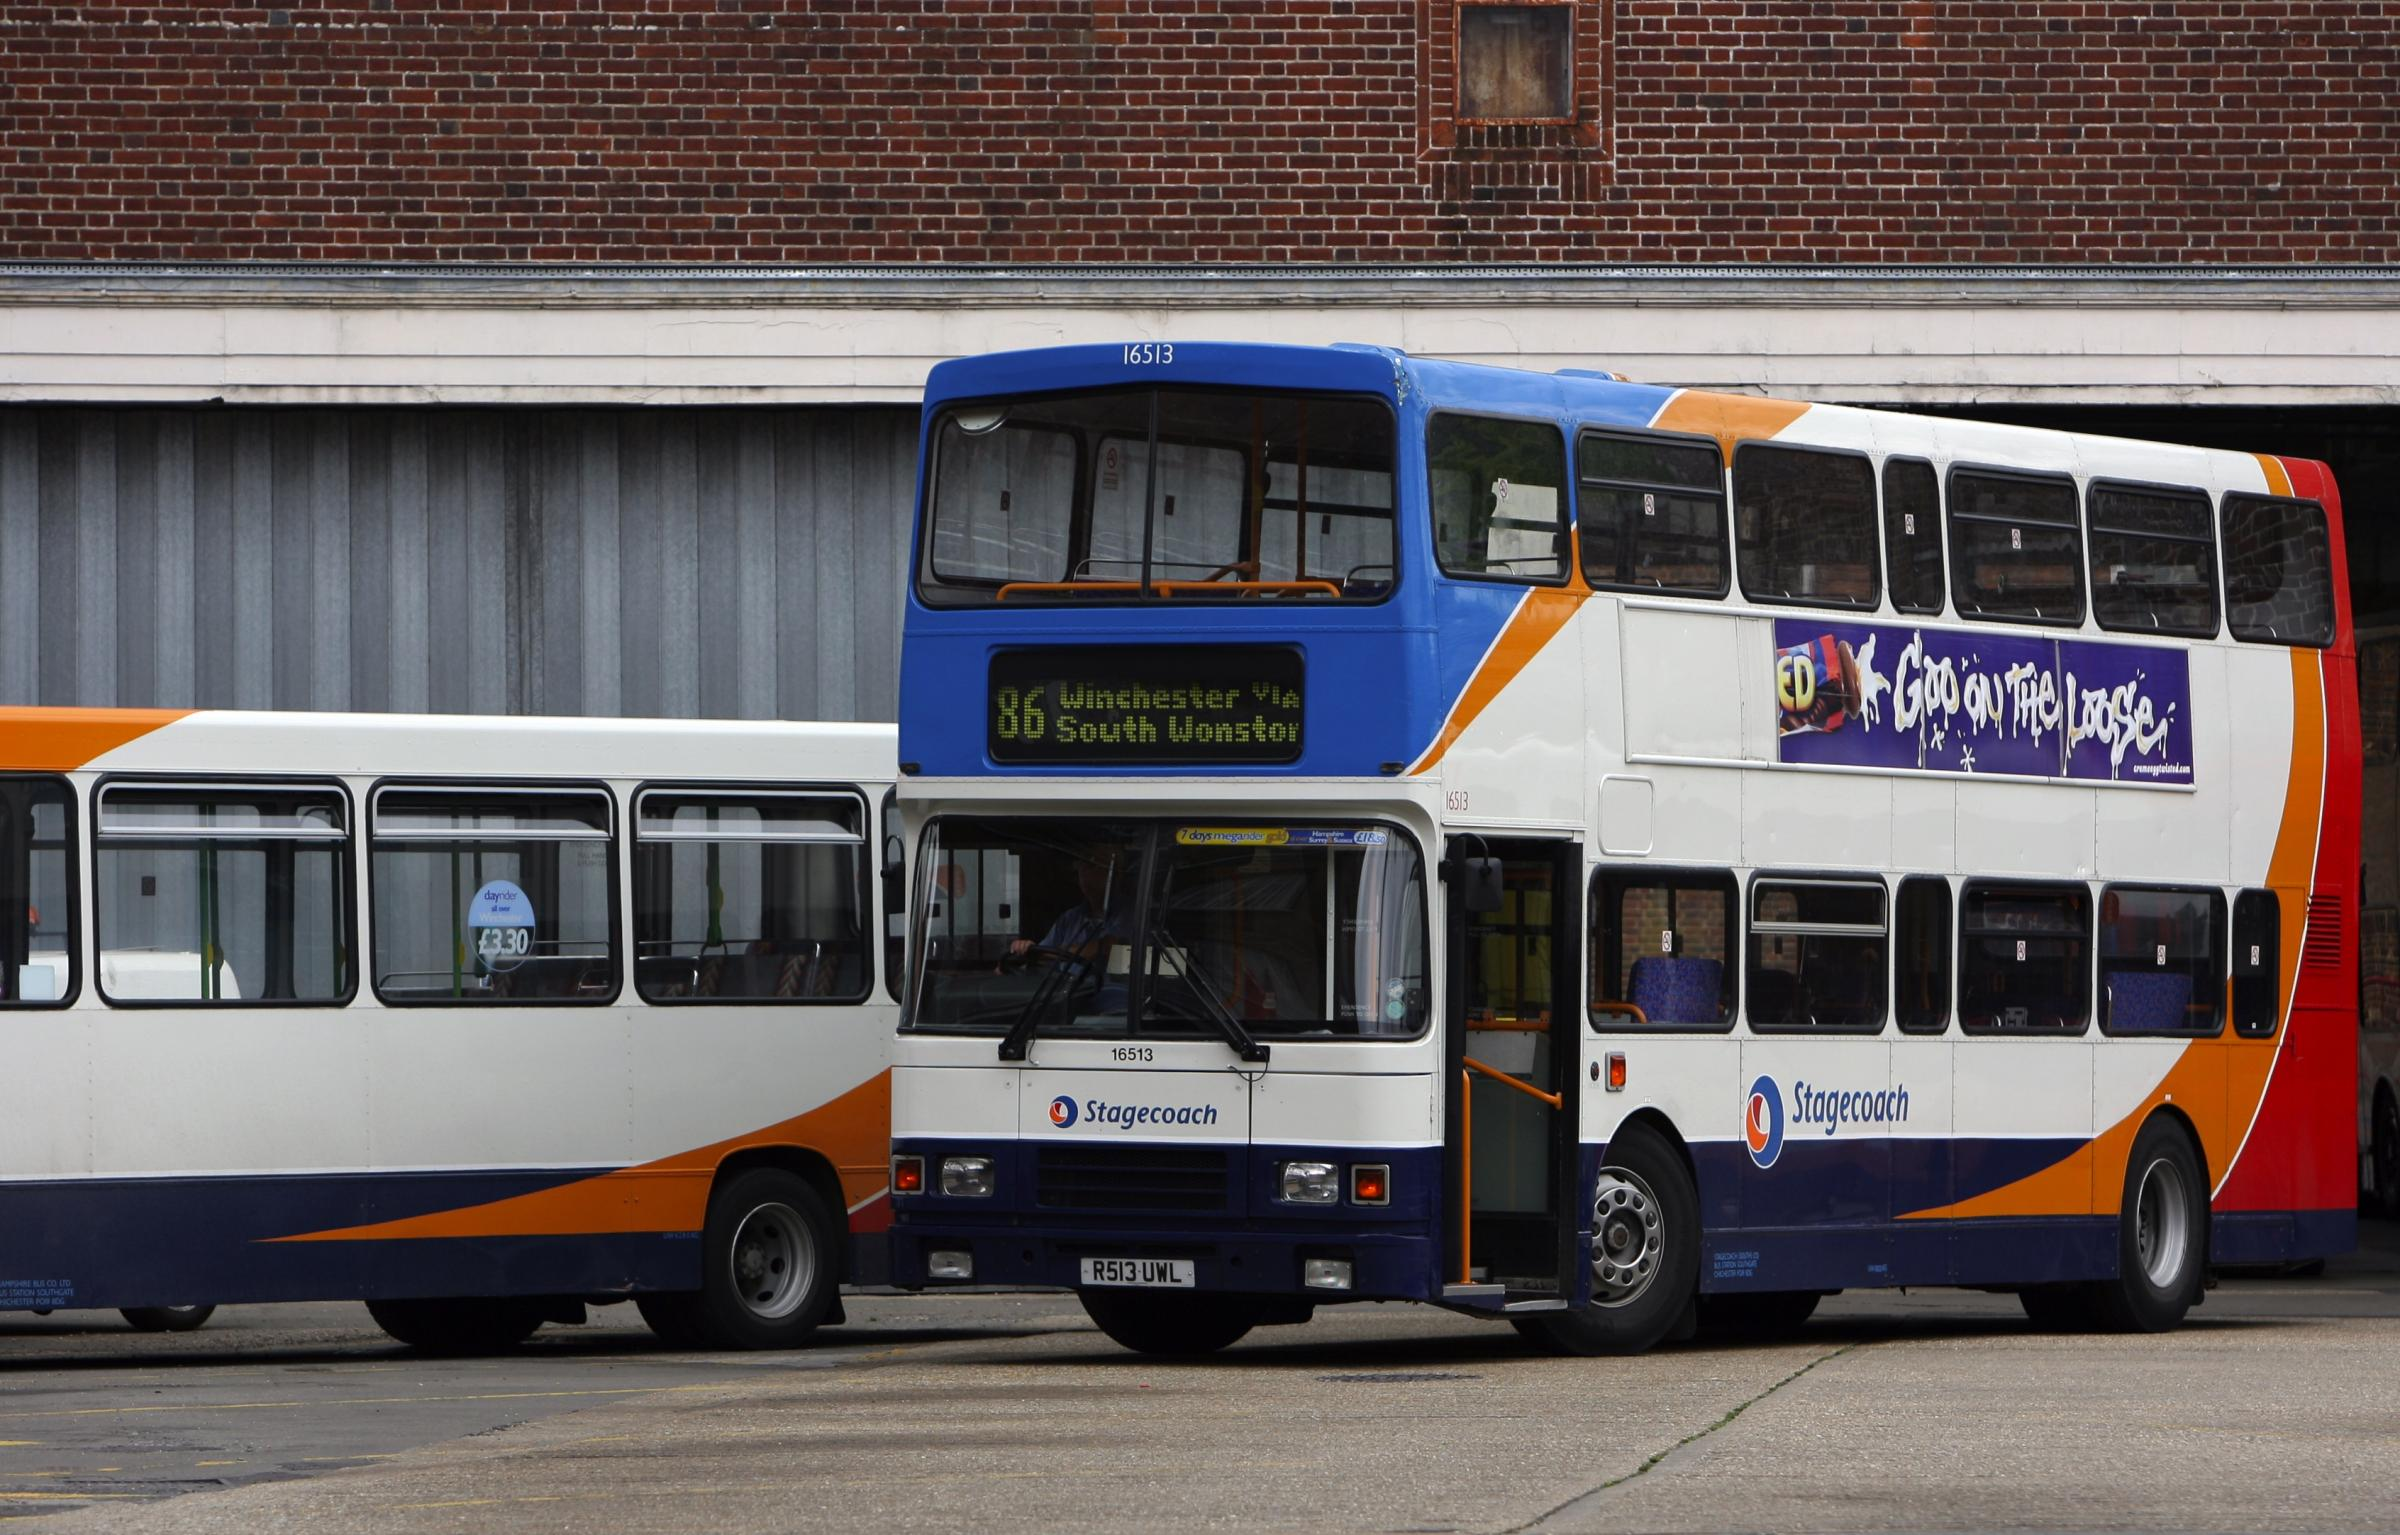 Unanimous decision to review concessionary bus passes